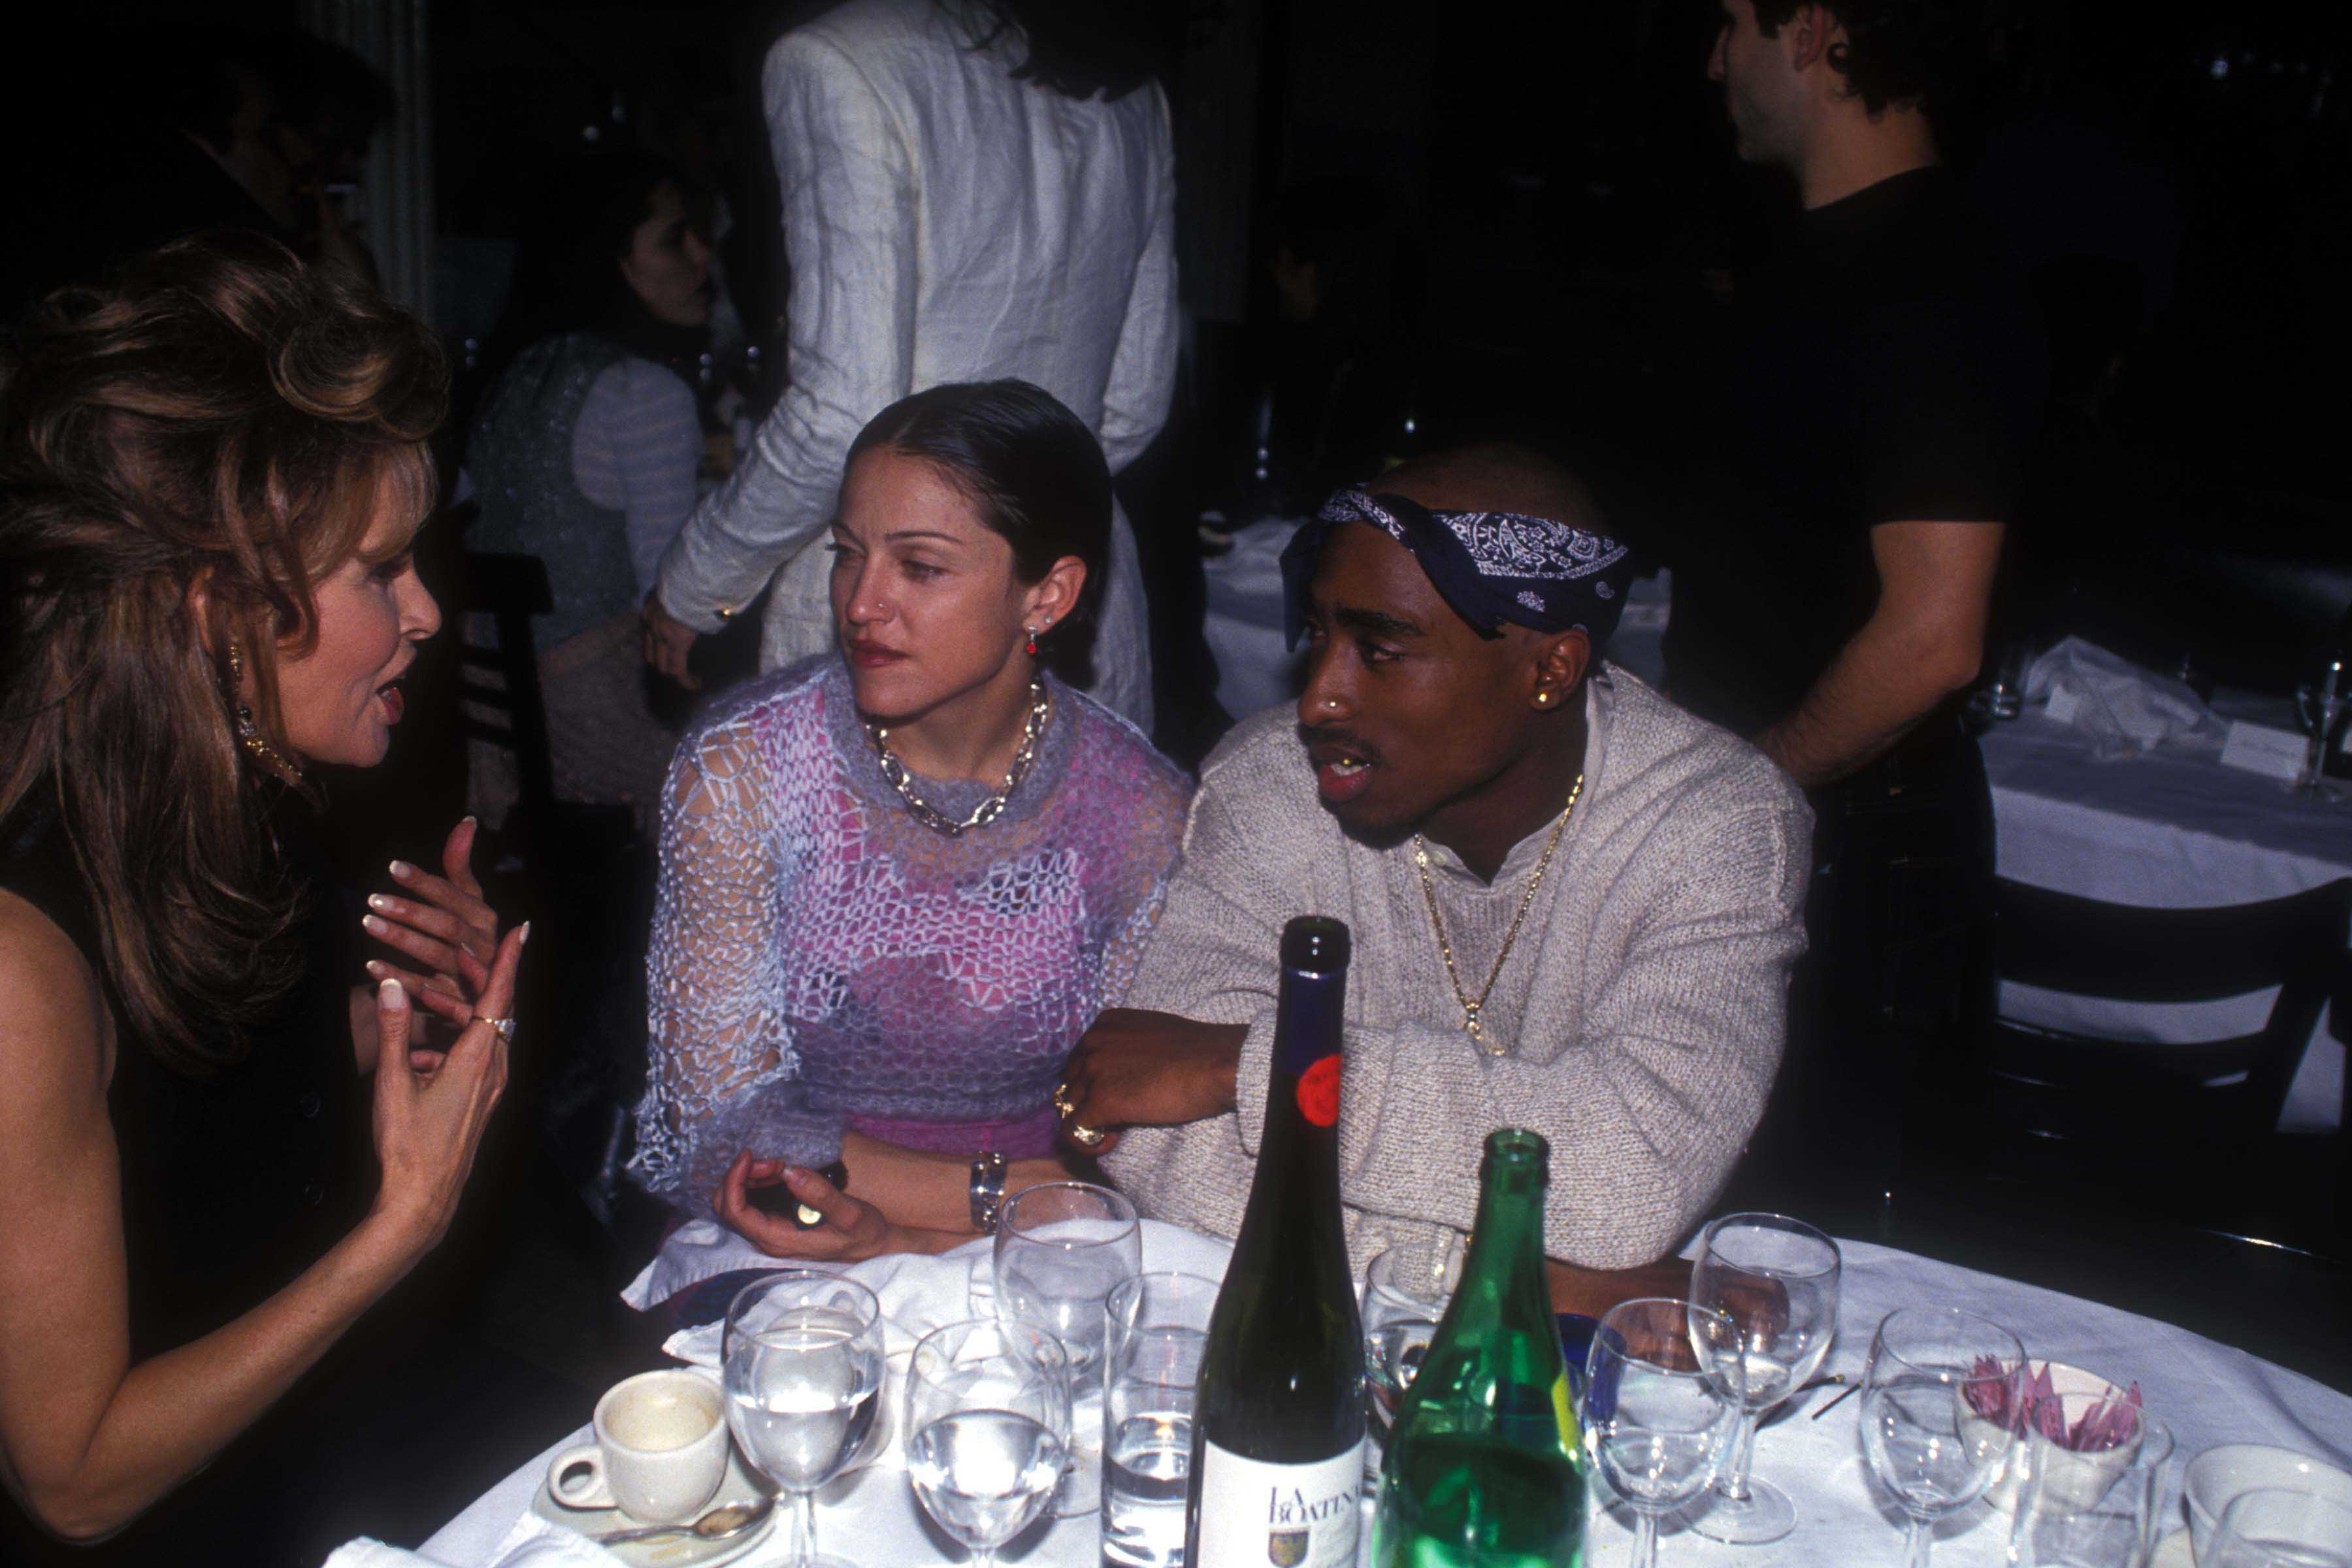 (L-R) Raquel Welch, Madonna and Tupac Shakur at the Interview Magazine party, March 1, 1994 in New York.